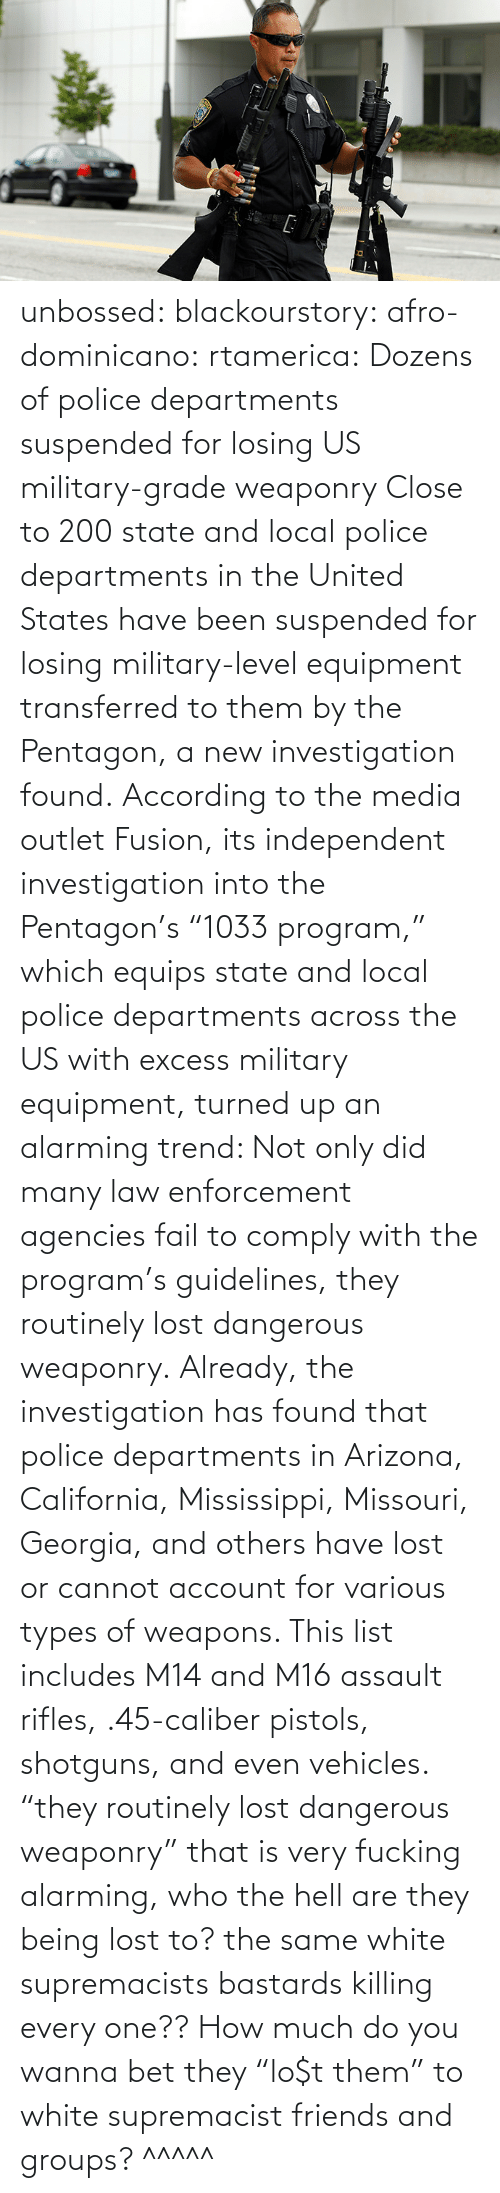 "state: unbossed: blackourstory:  afro-dominicano:  rtamerica:  Dozens of police departments suspended for losing US military-grade weaponry Close to 200 state and local police departments in the United States have been suspended for losing military-level equipment transferred to them by the Pentagon, a new investigation found. According to the media outlet Fusion, its independent investigation into the Pentagon's ""1033 program,"" which equips state and local police departments across the US with excess military equipment, turned up an alarming trend: Not only did many law enforcement agencies fail to comply with the program's guidelines, they routinely lost dangerous weaponry. Already, the investigation has found that police departments in Arizona, California, Mississippi, Missouri, Georgia, and others have lost or cannot account for various types of weapons. This list includes M14 and M16 assault rifles, .45-caliber pistols, shotguns, and even vehicles.  ""they routinely lost dangerous weaponry"" that is very fucking alarming, who the hell are they being lost to? the same white supremacists bastards killing every one??  How much do you wanna bet they ""lo$t them"" to white supremacist friends and groups?   ^^^^^"